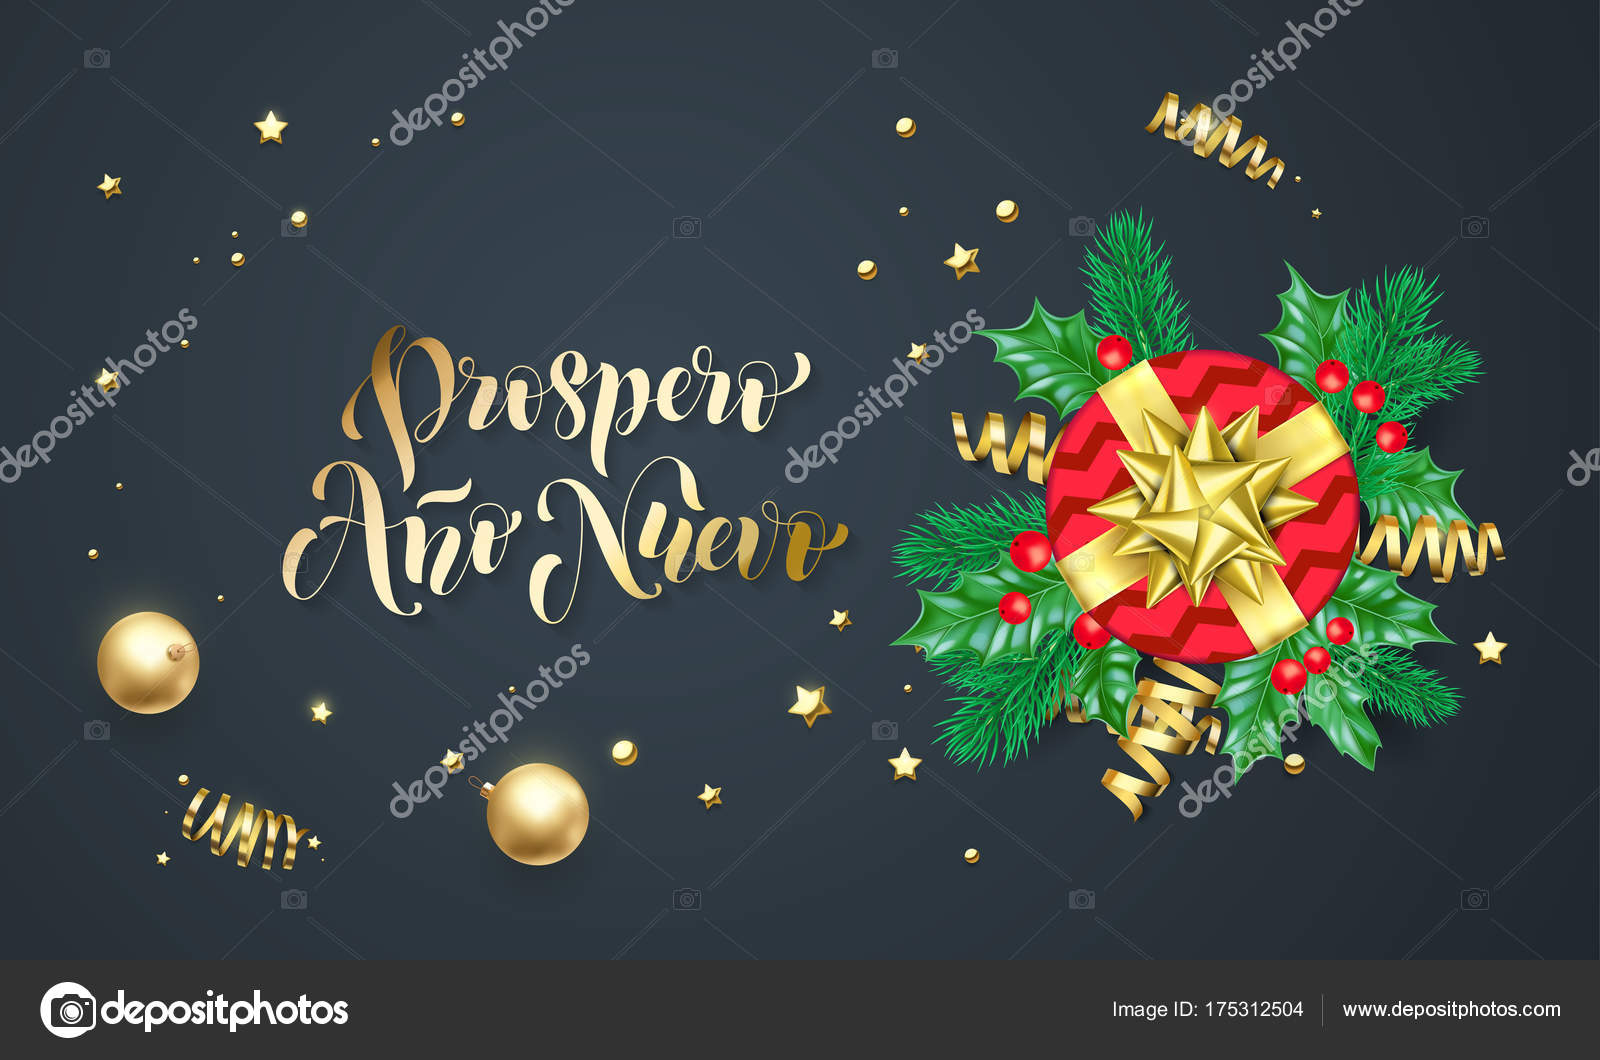 Prospero Ano Nuevo Spanish New Year Golden Decoration And Gold Font